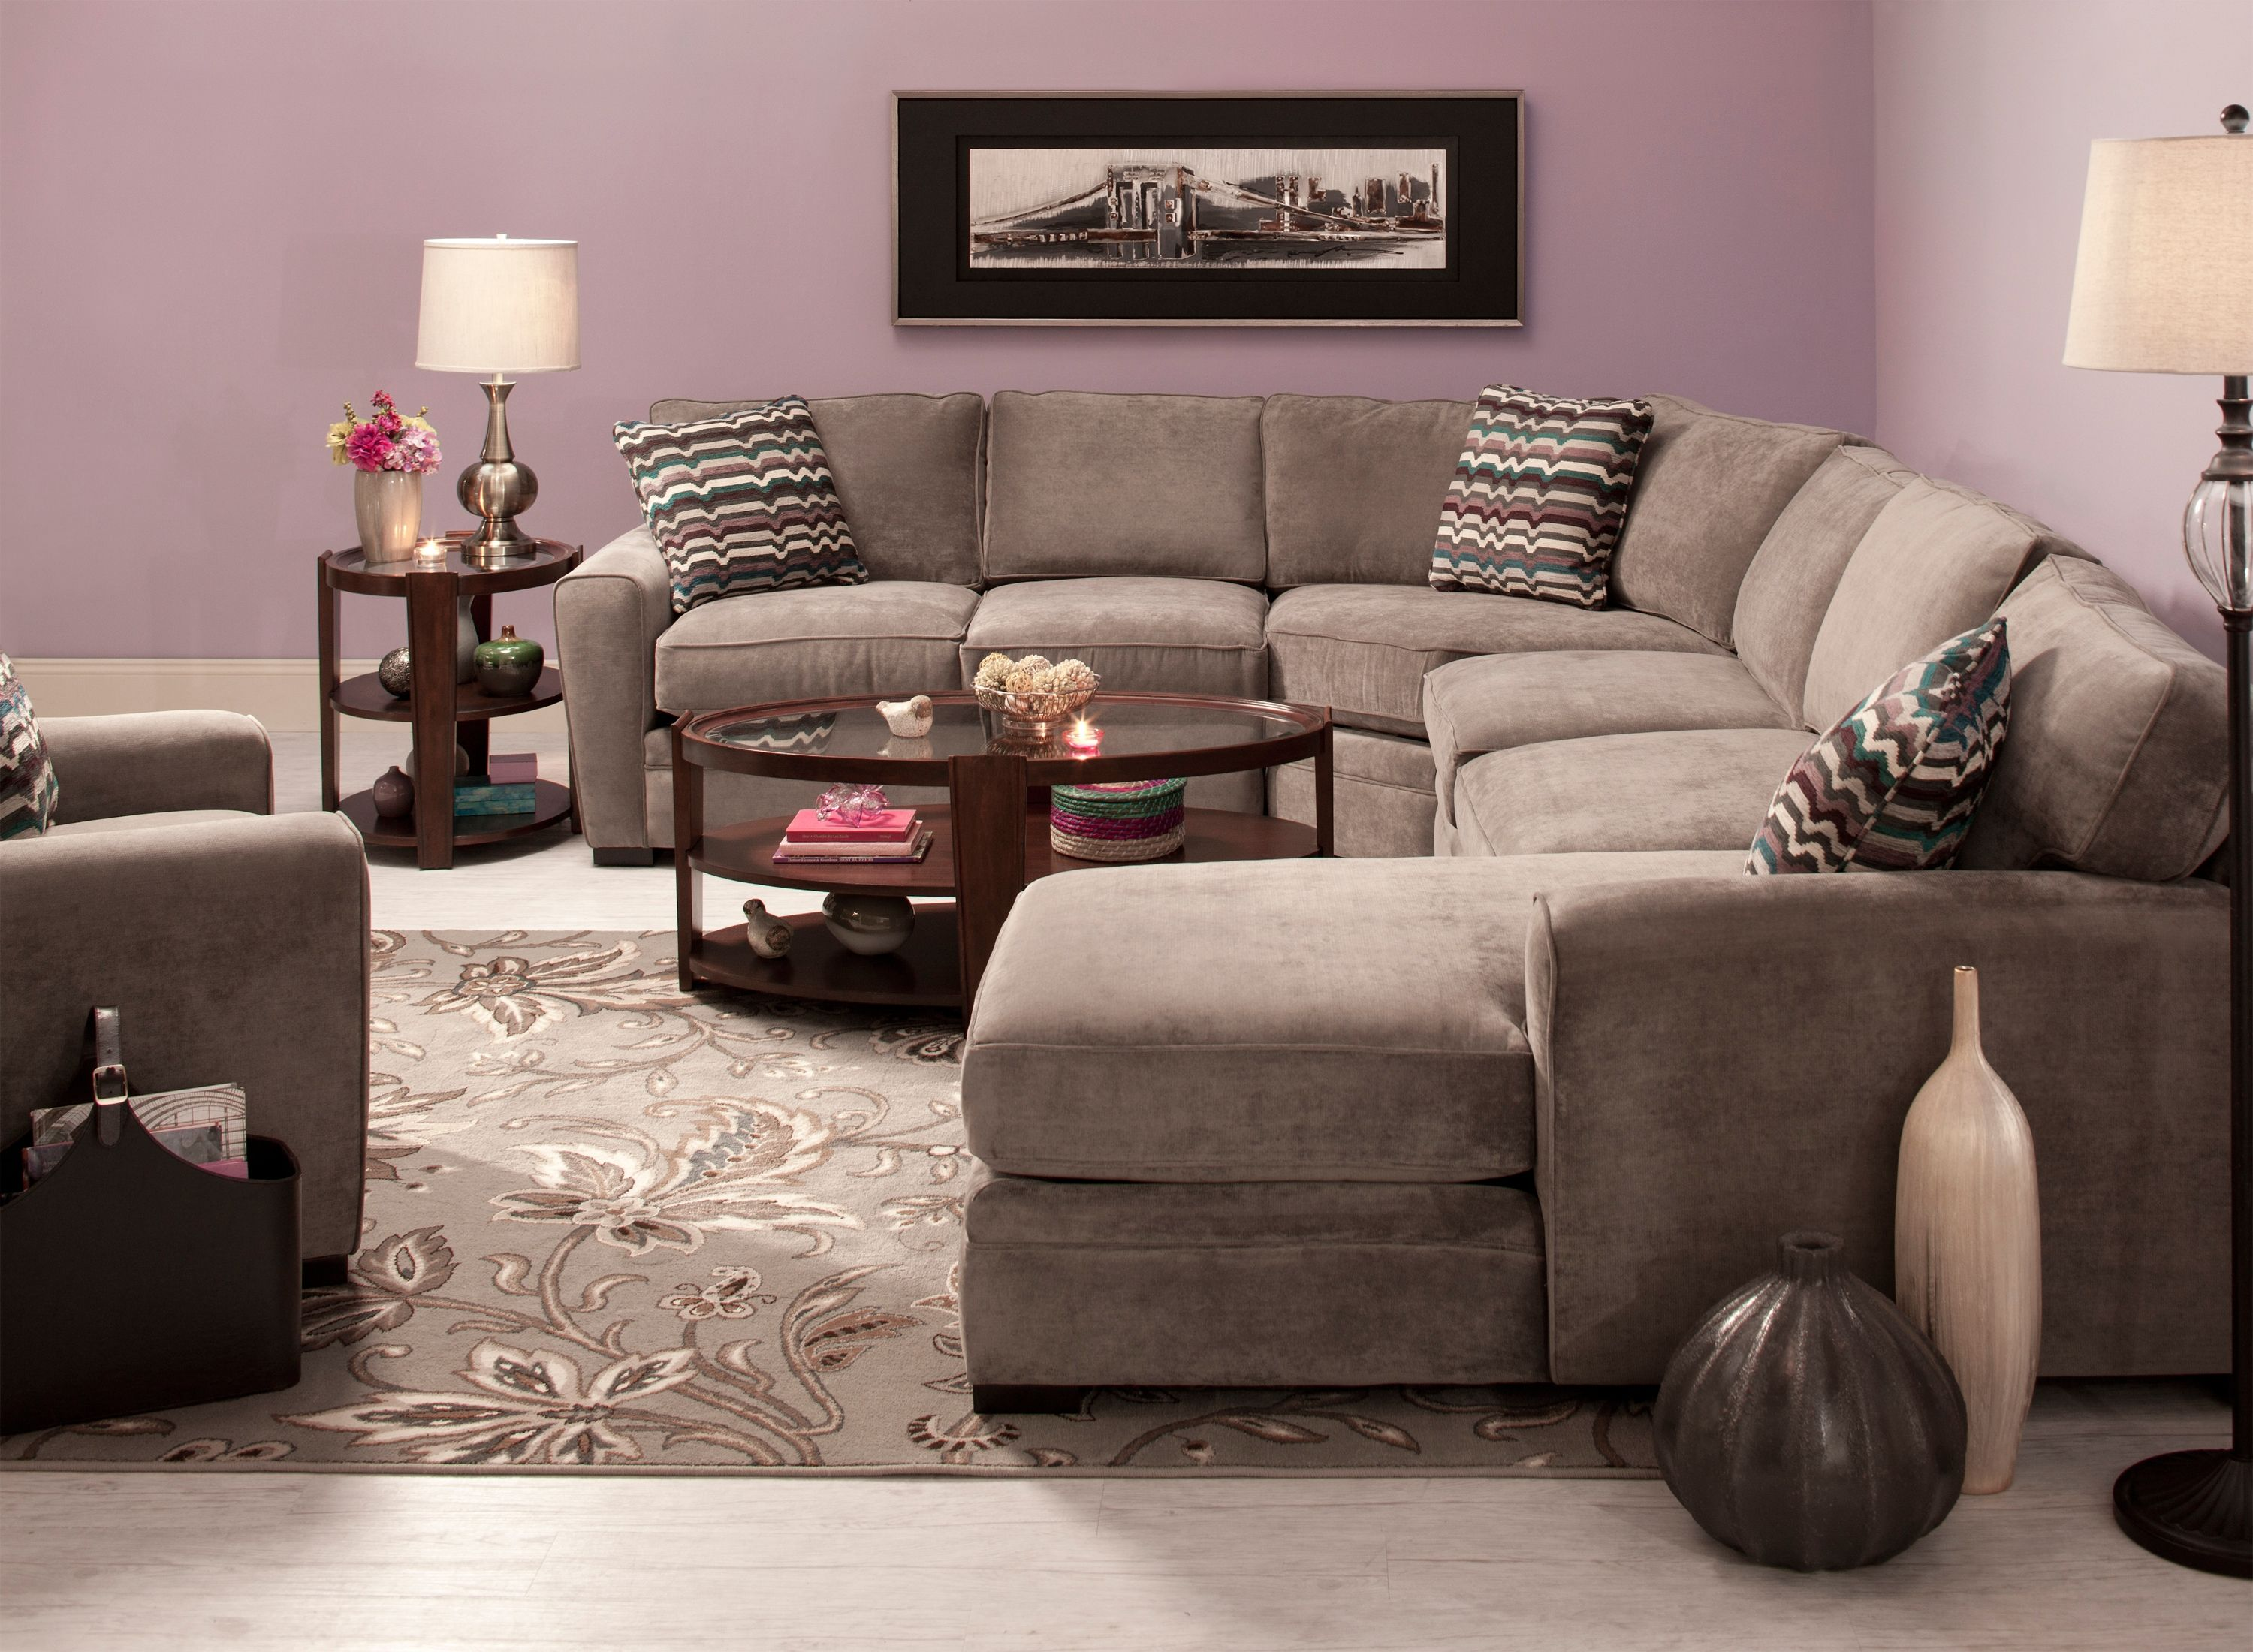 This Artemis II 4 piece microfiber sectional sofa is so easy to